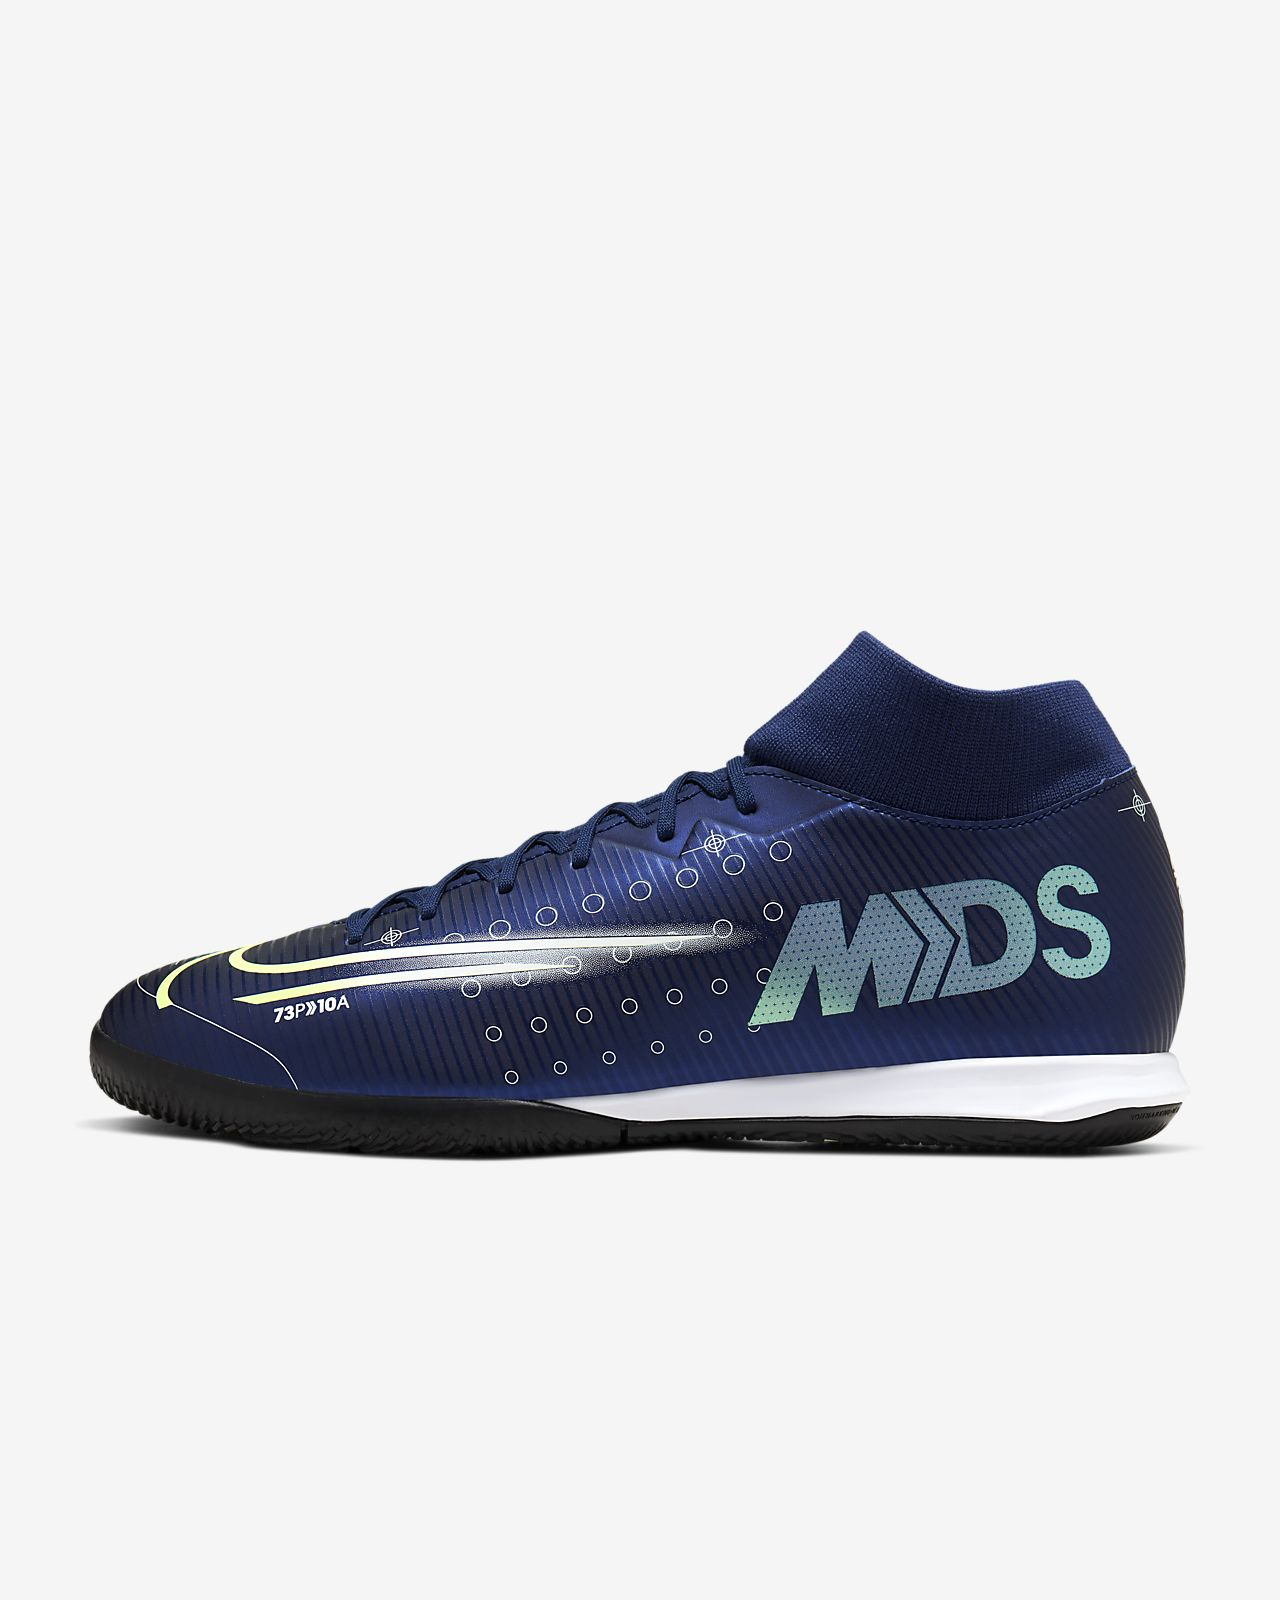 Nike Mercurial Superfly 7 Academy MDS IC Indoor/Court Soccer Shoe